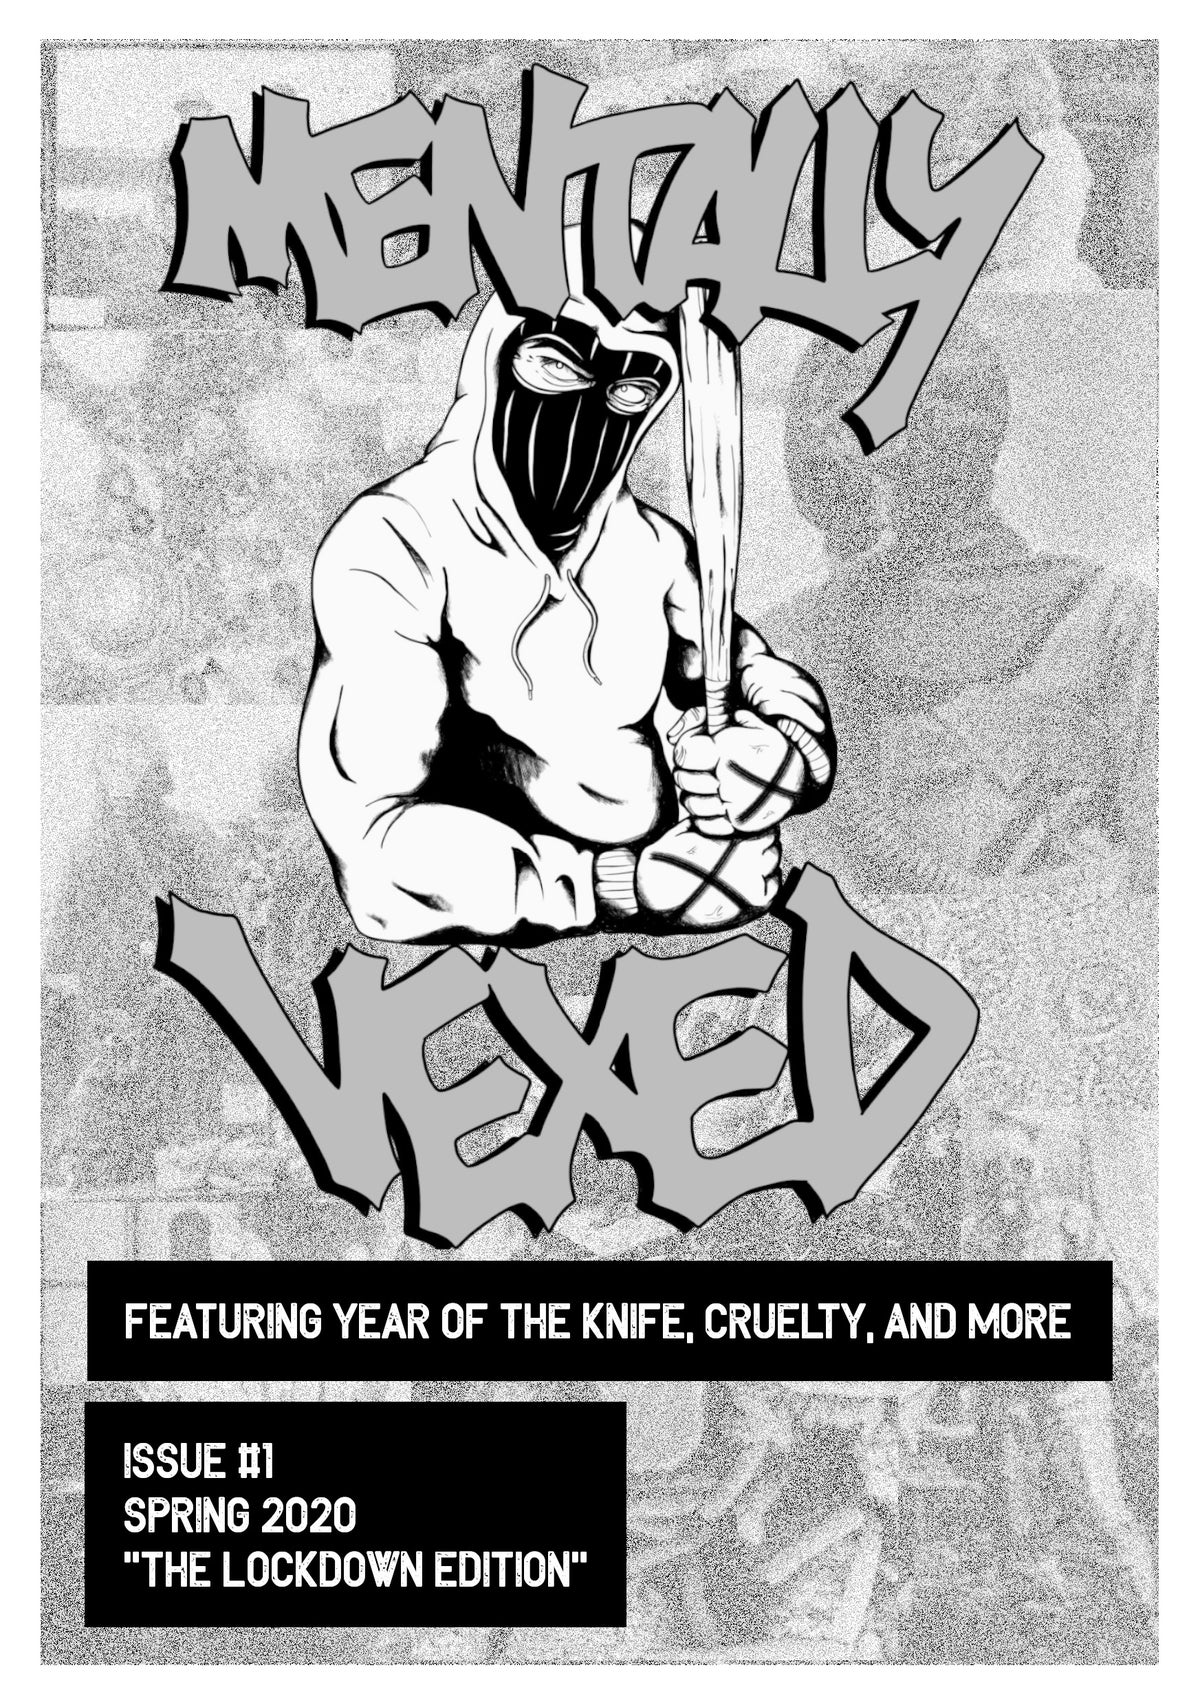 MENTALLY VEXED ISSUE #1 - FREE DIGITAL DOWNLOAD